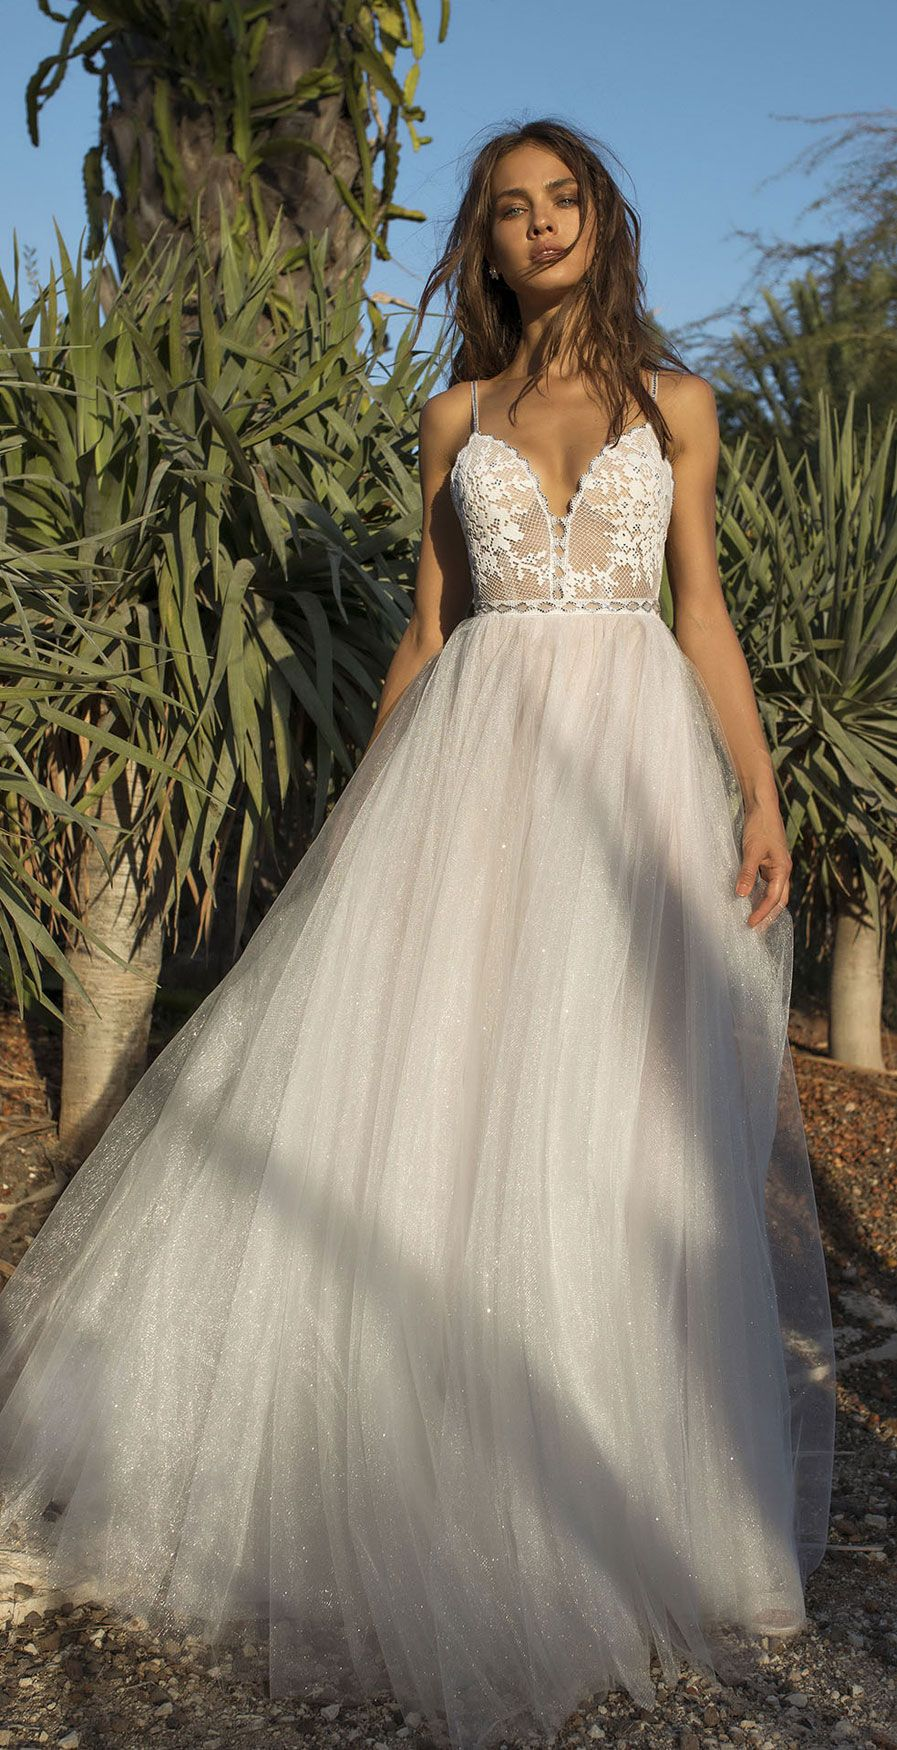 32 Beach Wedding Dresses Perfect For A Destination Wedding, simple wedding dress ,off the shoulder wedding gown #weddingdress #weddinggown